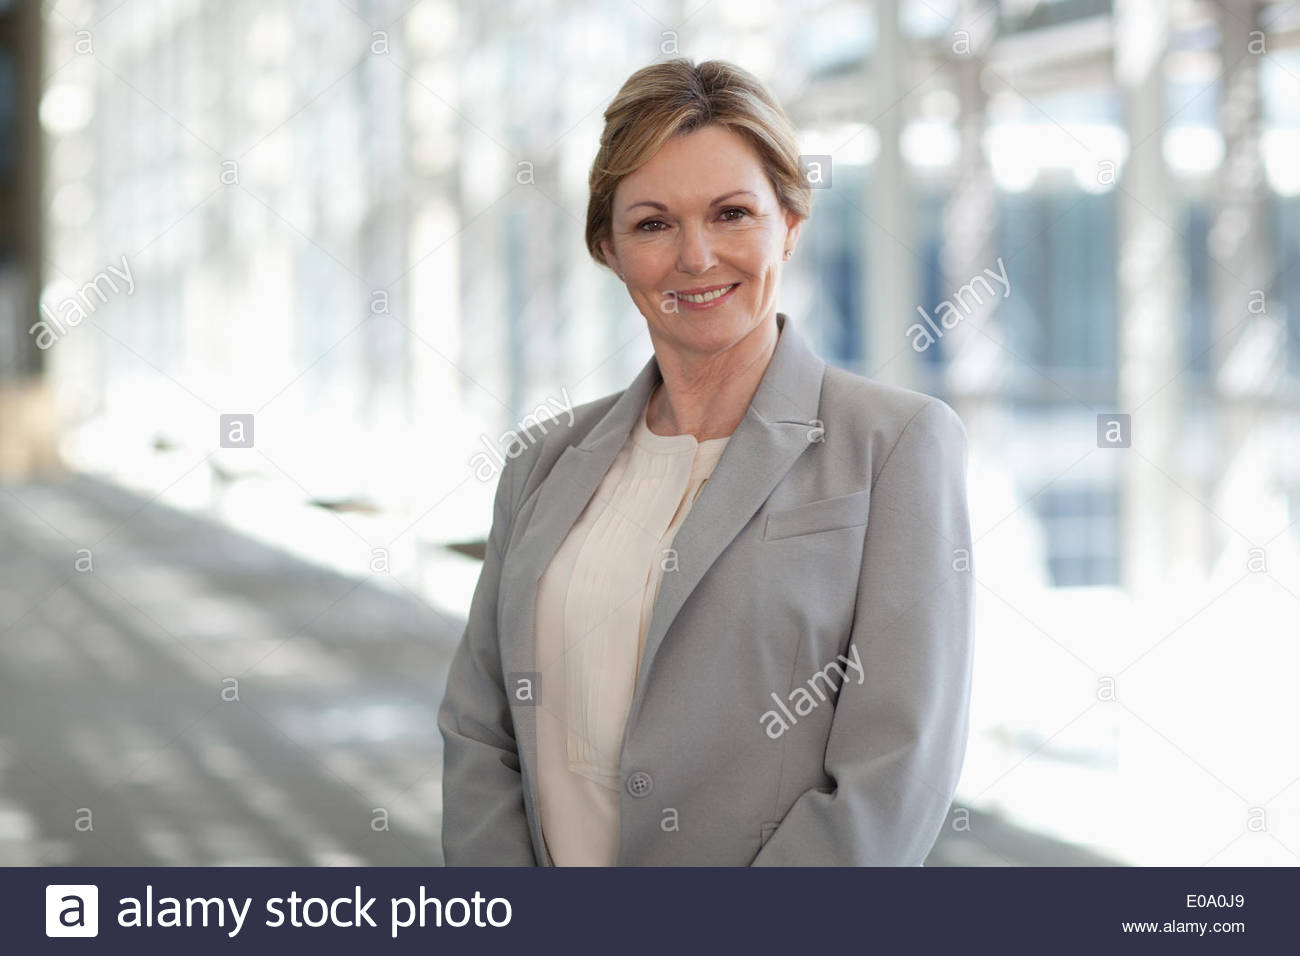 Smiling businesswoman - Stock Image